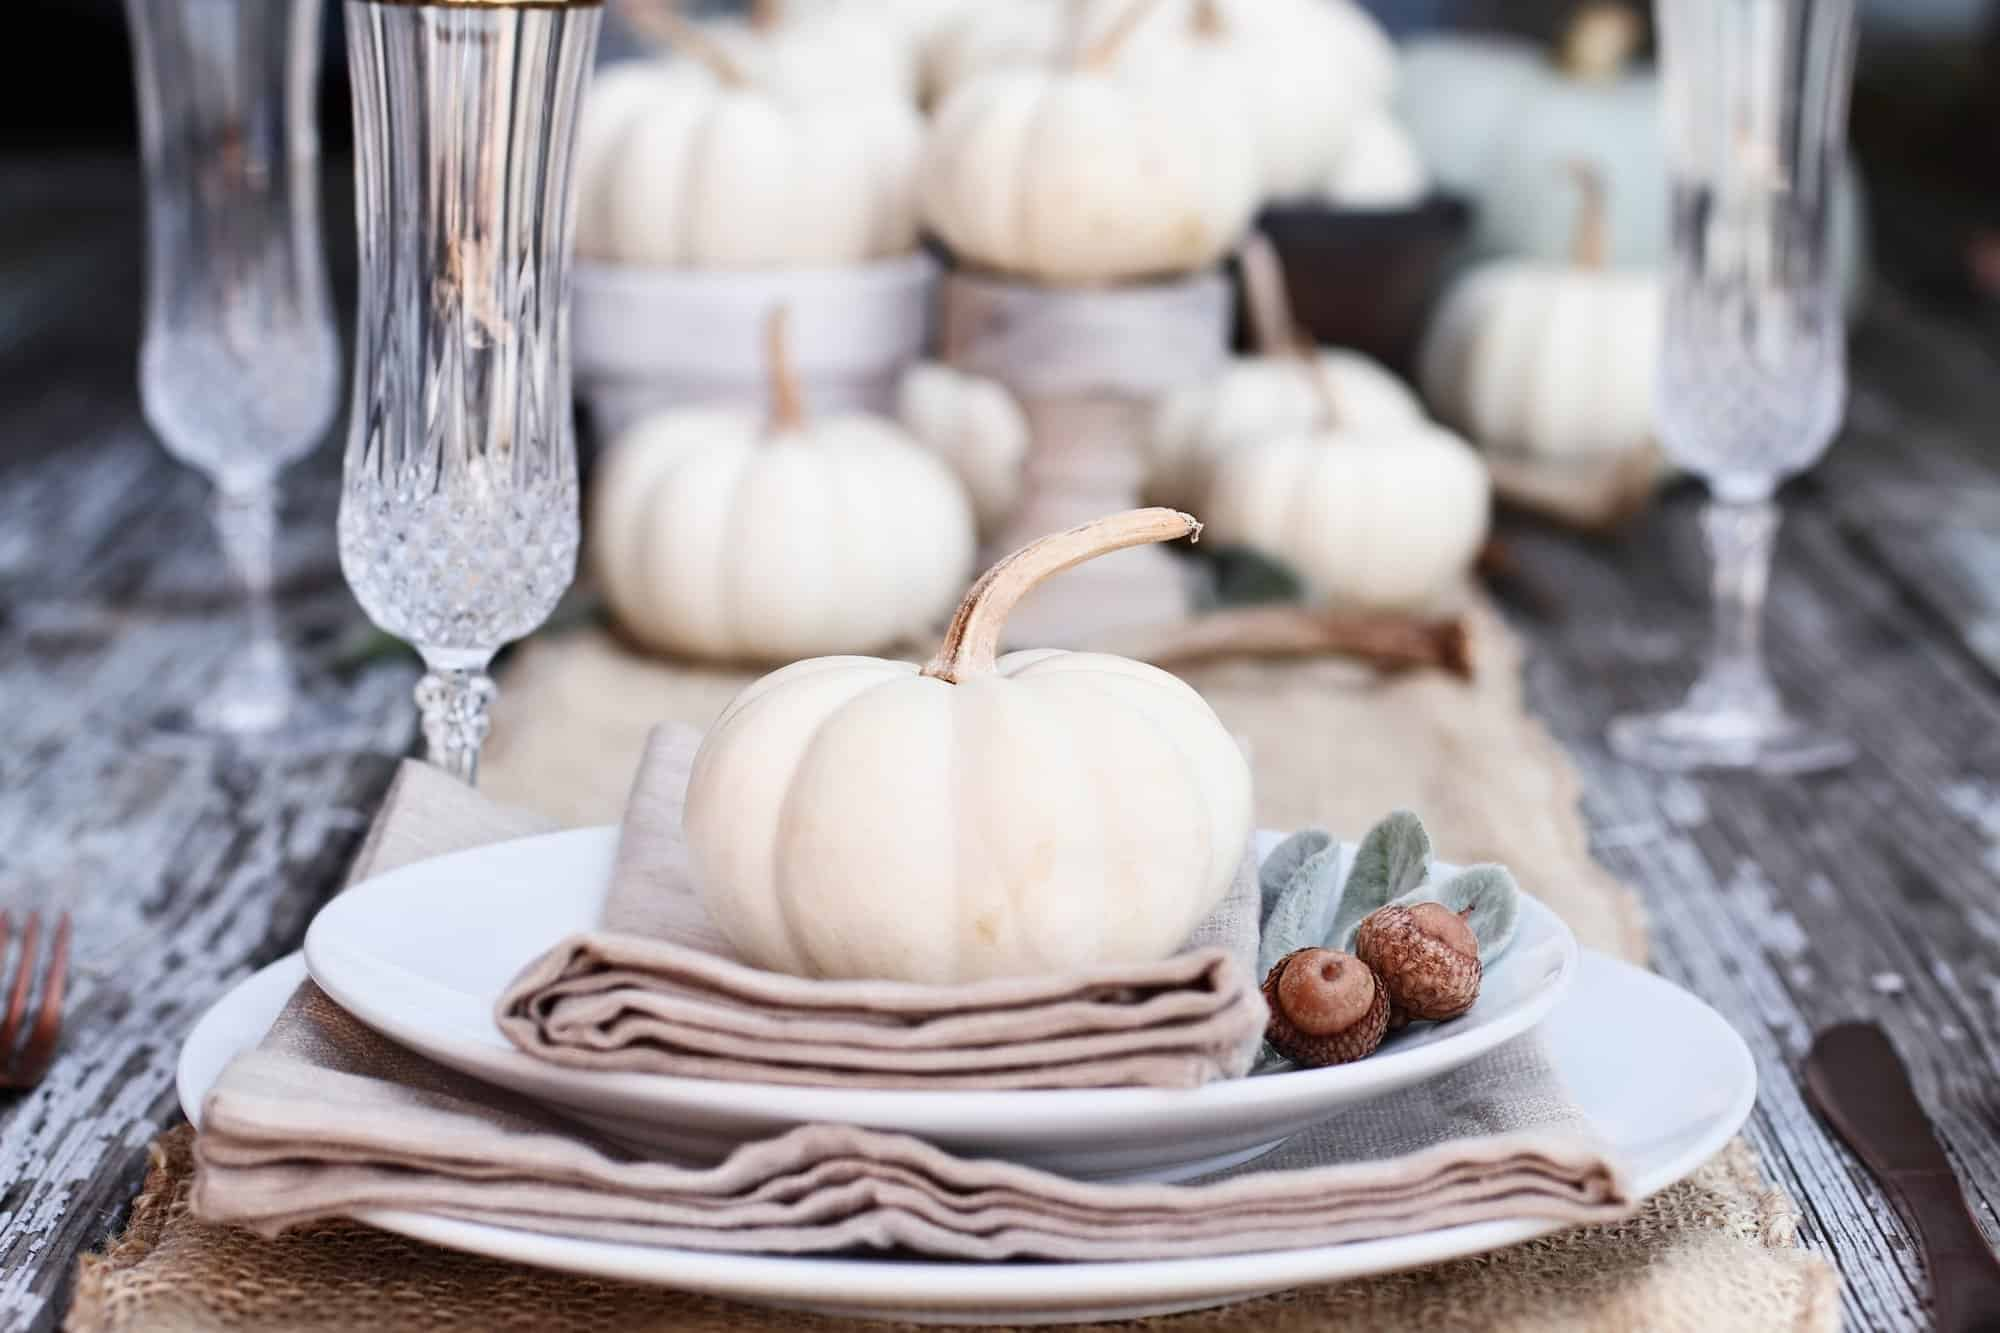 Beautiful fall tablescape with white dishes, pumpkins, and natural color napkins